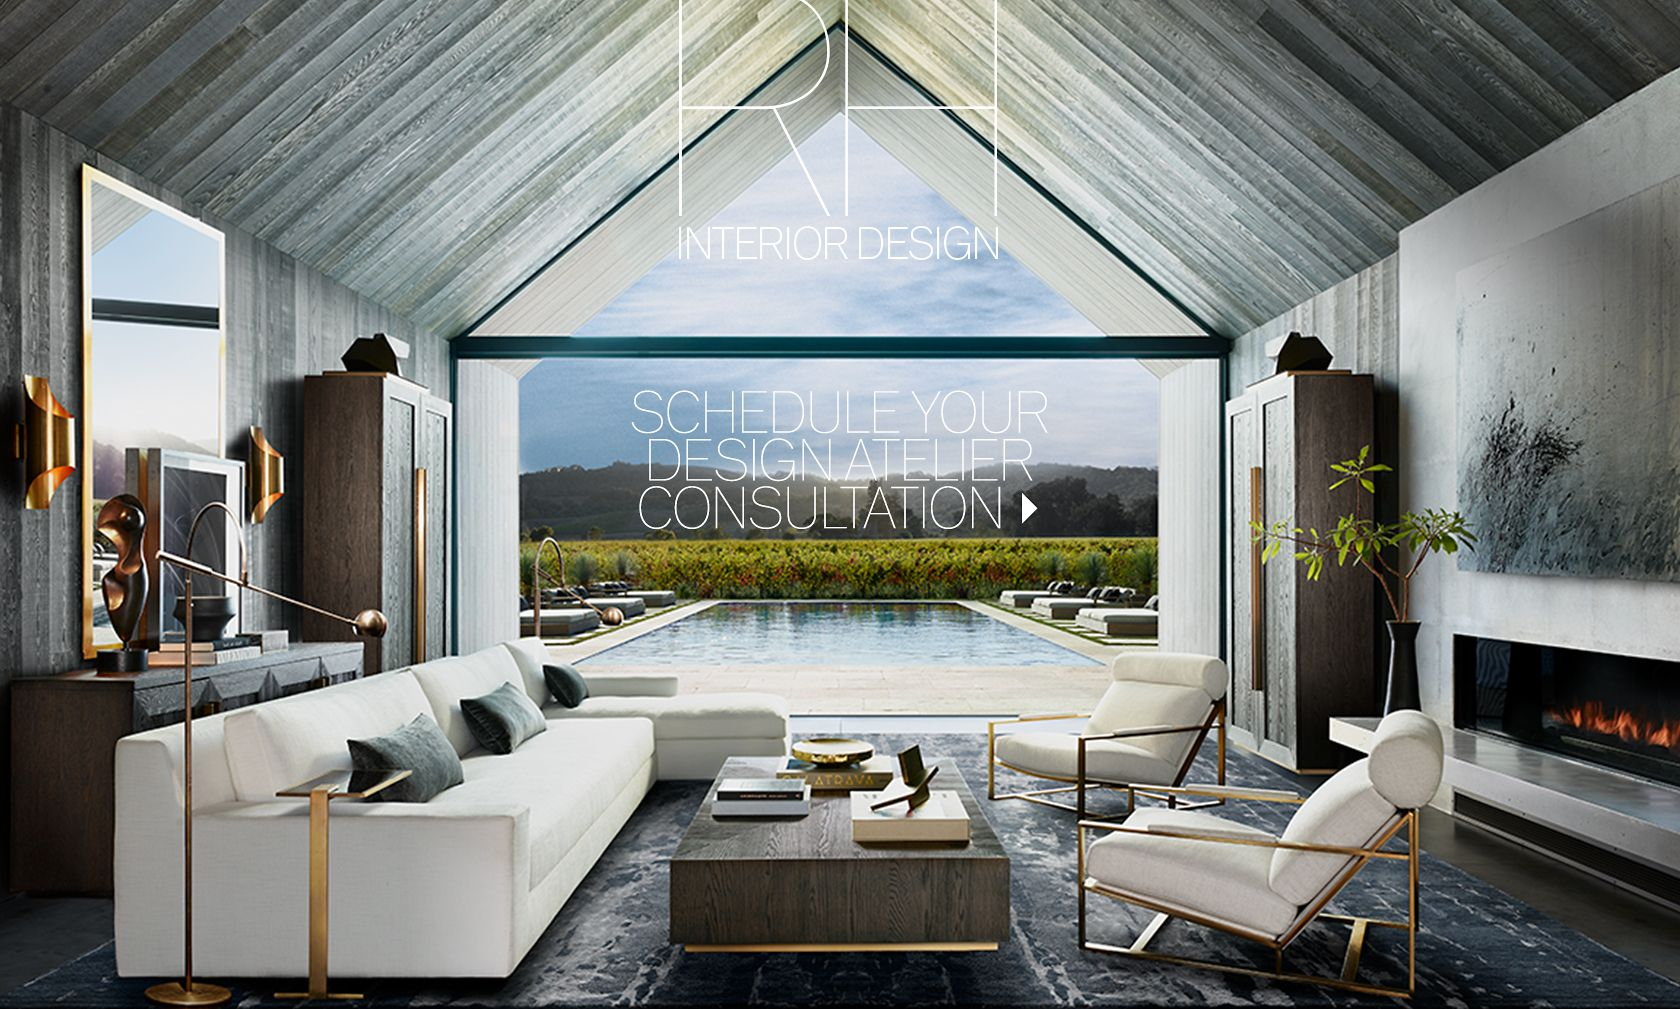 Imagine yourself here. Schedule your RH Interior Design Consultation.